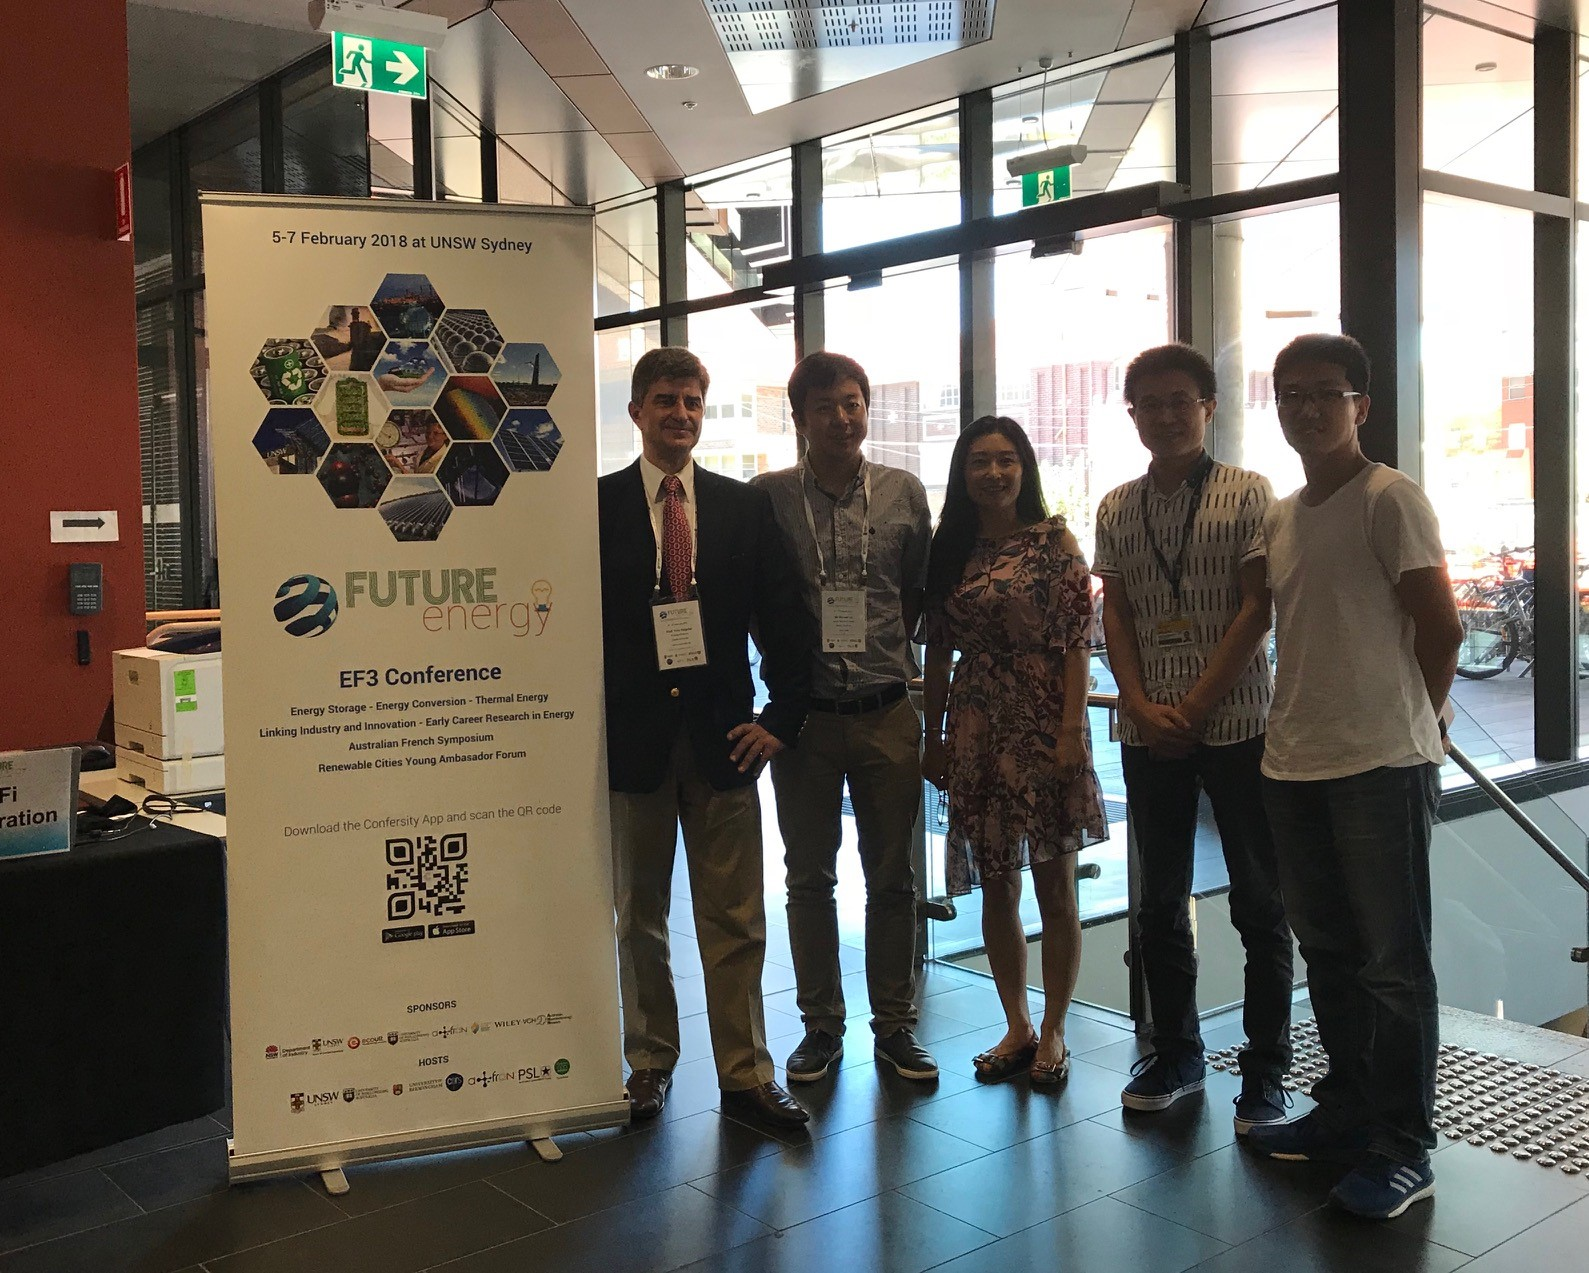 Professor Yury Gogotsi and his Australian collaborators - Professor Weiwei Lei from Deakin and his group, EF3 Conference 2018, Sidney, Australia